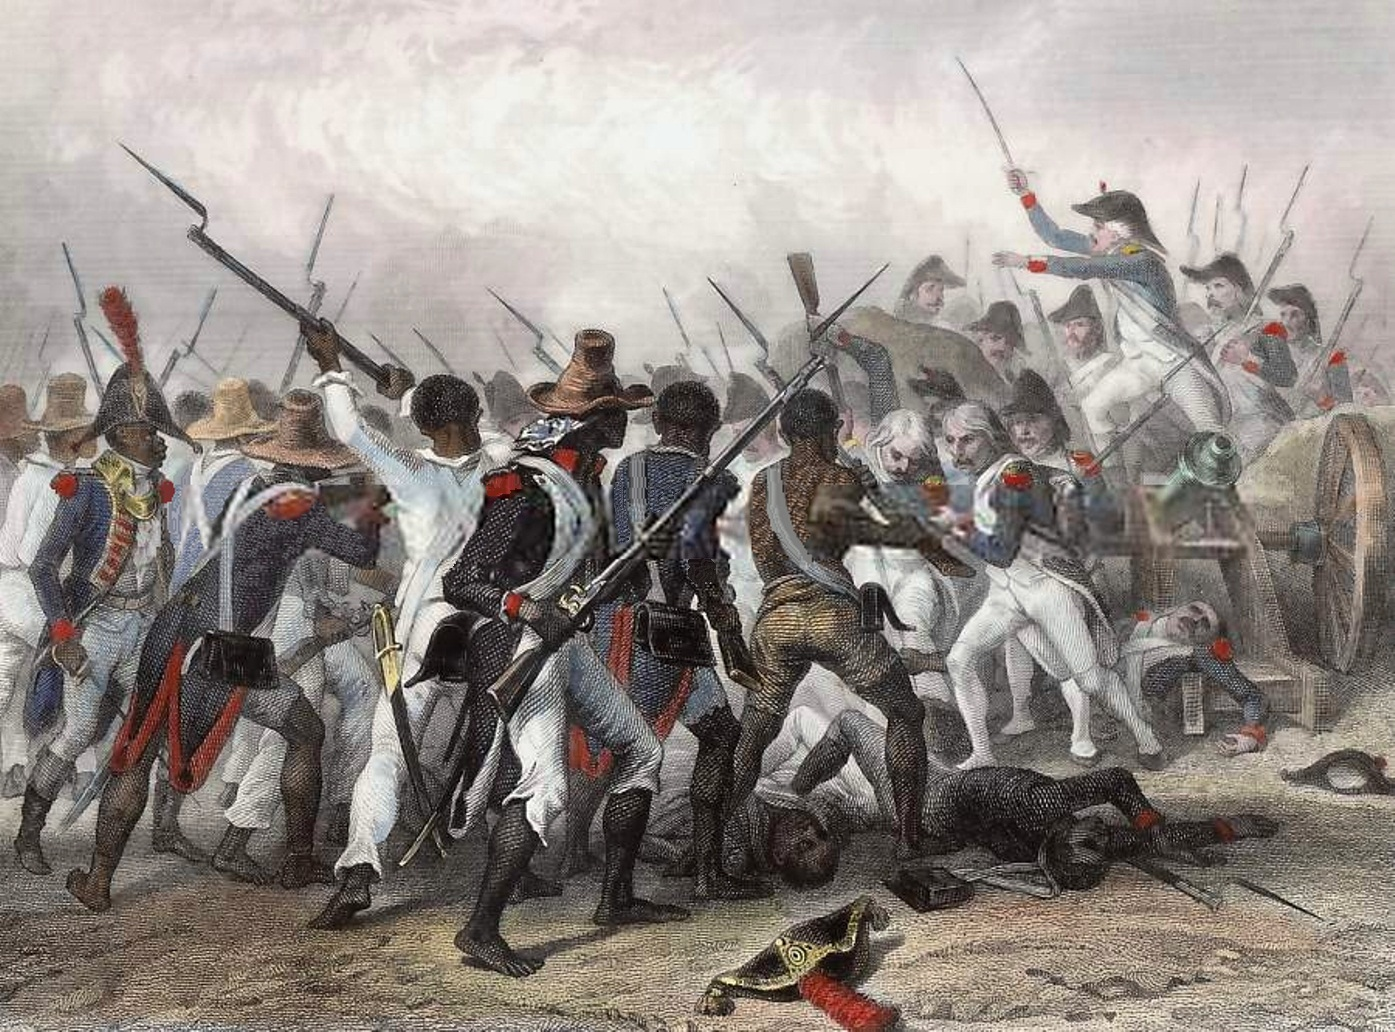 Figure 1: The Battle of Vertières, Nov. 18, 1803, one of the final defeats of the French in the 13 year revolution. Painting by Auguste Raffet.